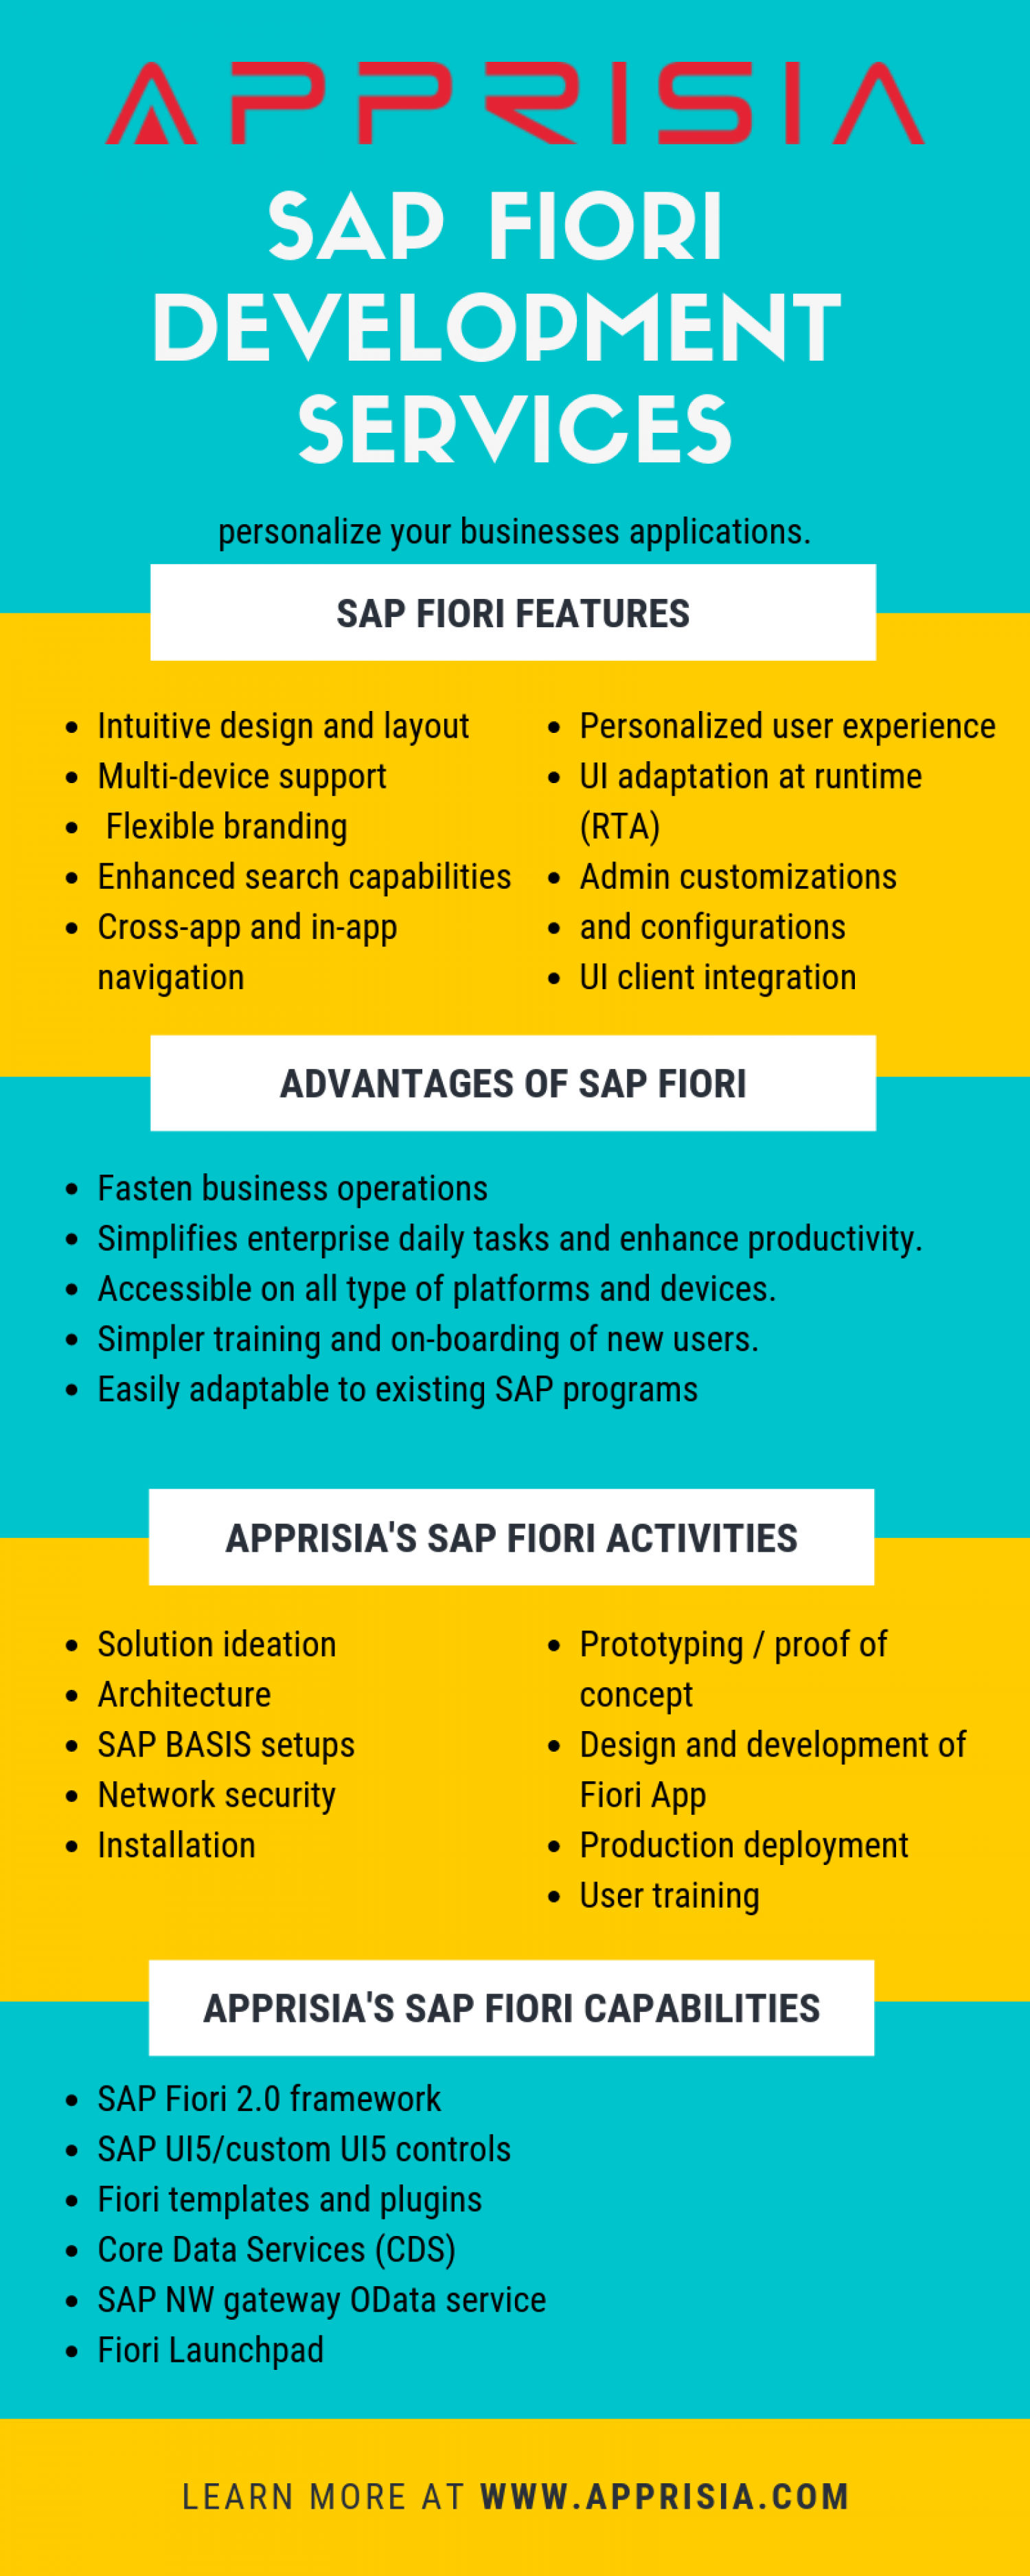 Things to be Consider Before Implementing SAP Fiori Applications Infographic